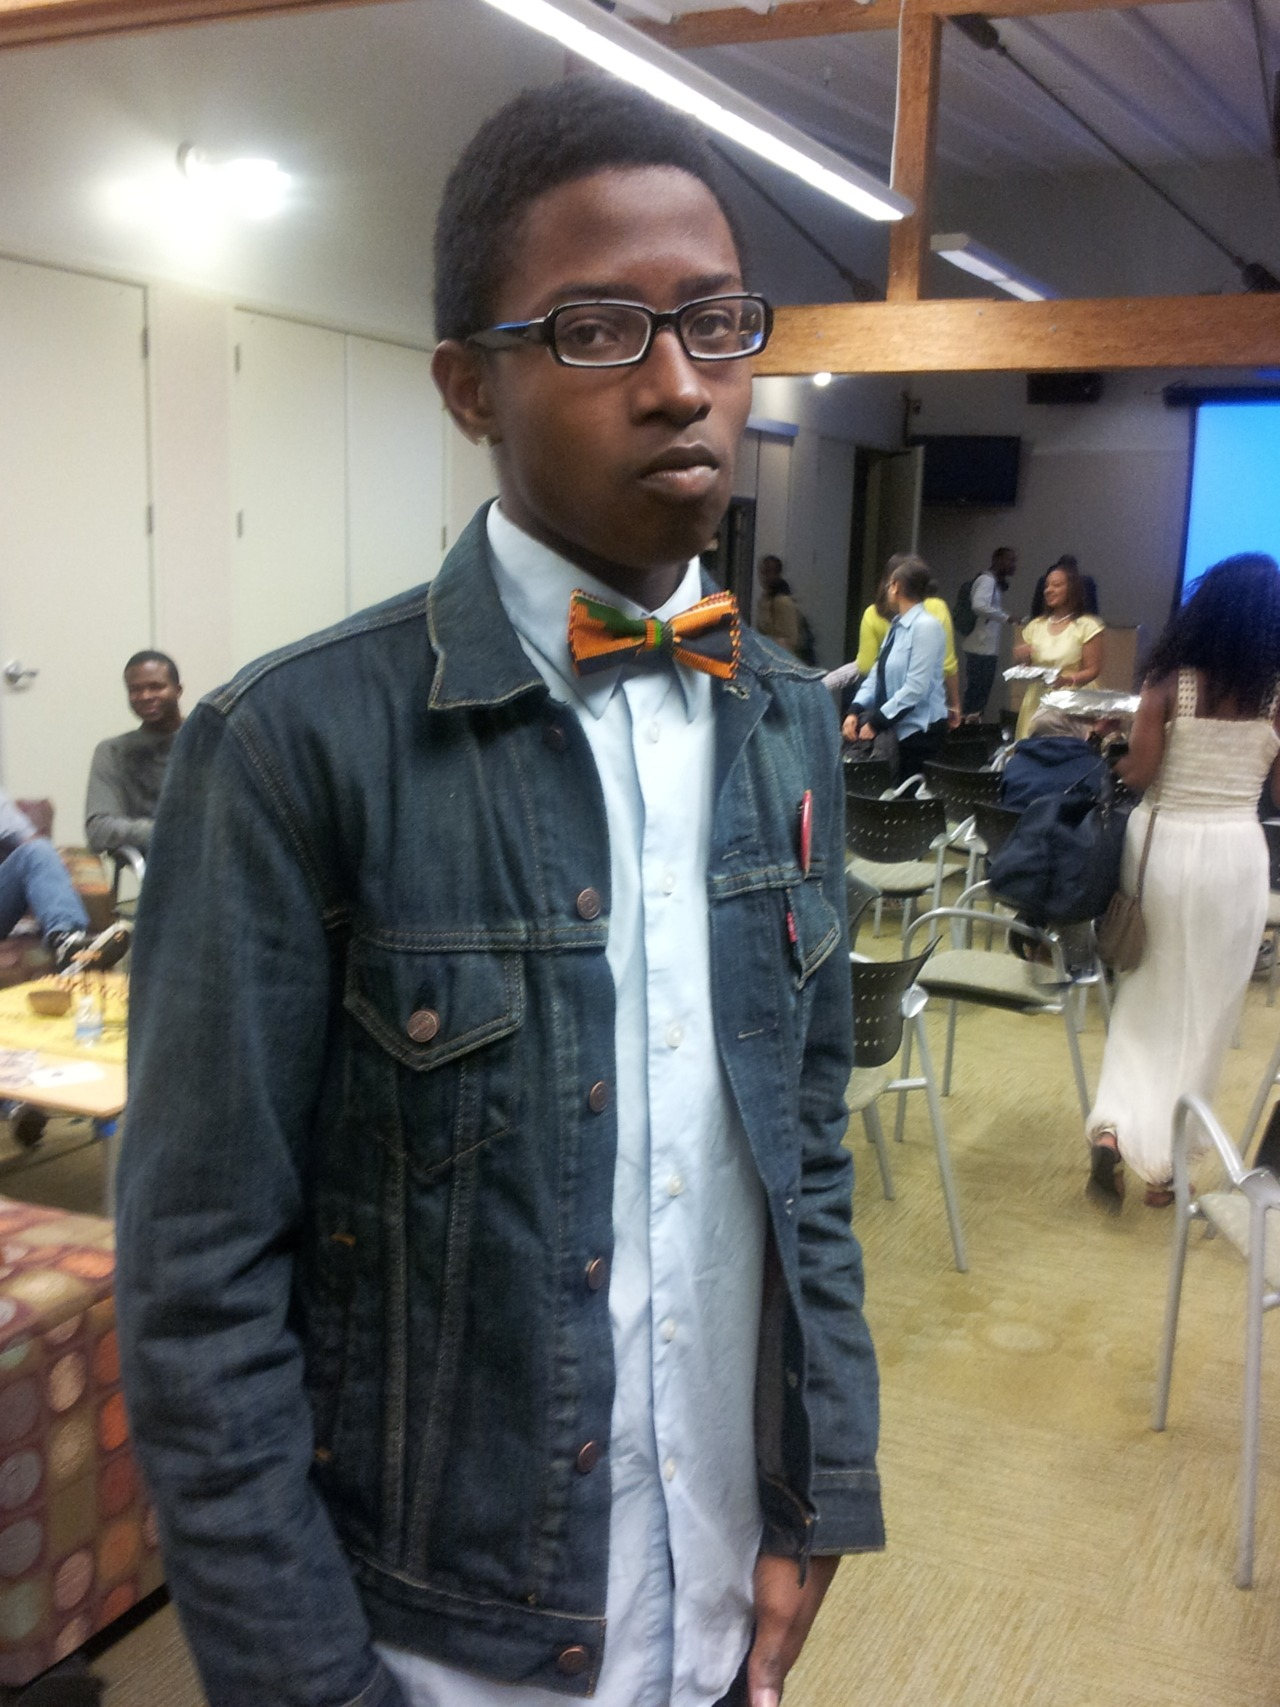 This brother was so fresh in his bow tie I had to give him a# GOOD IDEA S/O